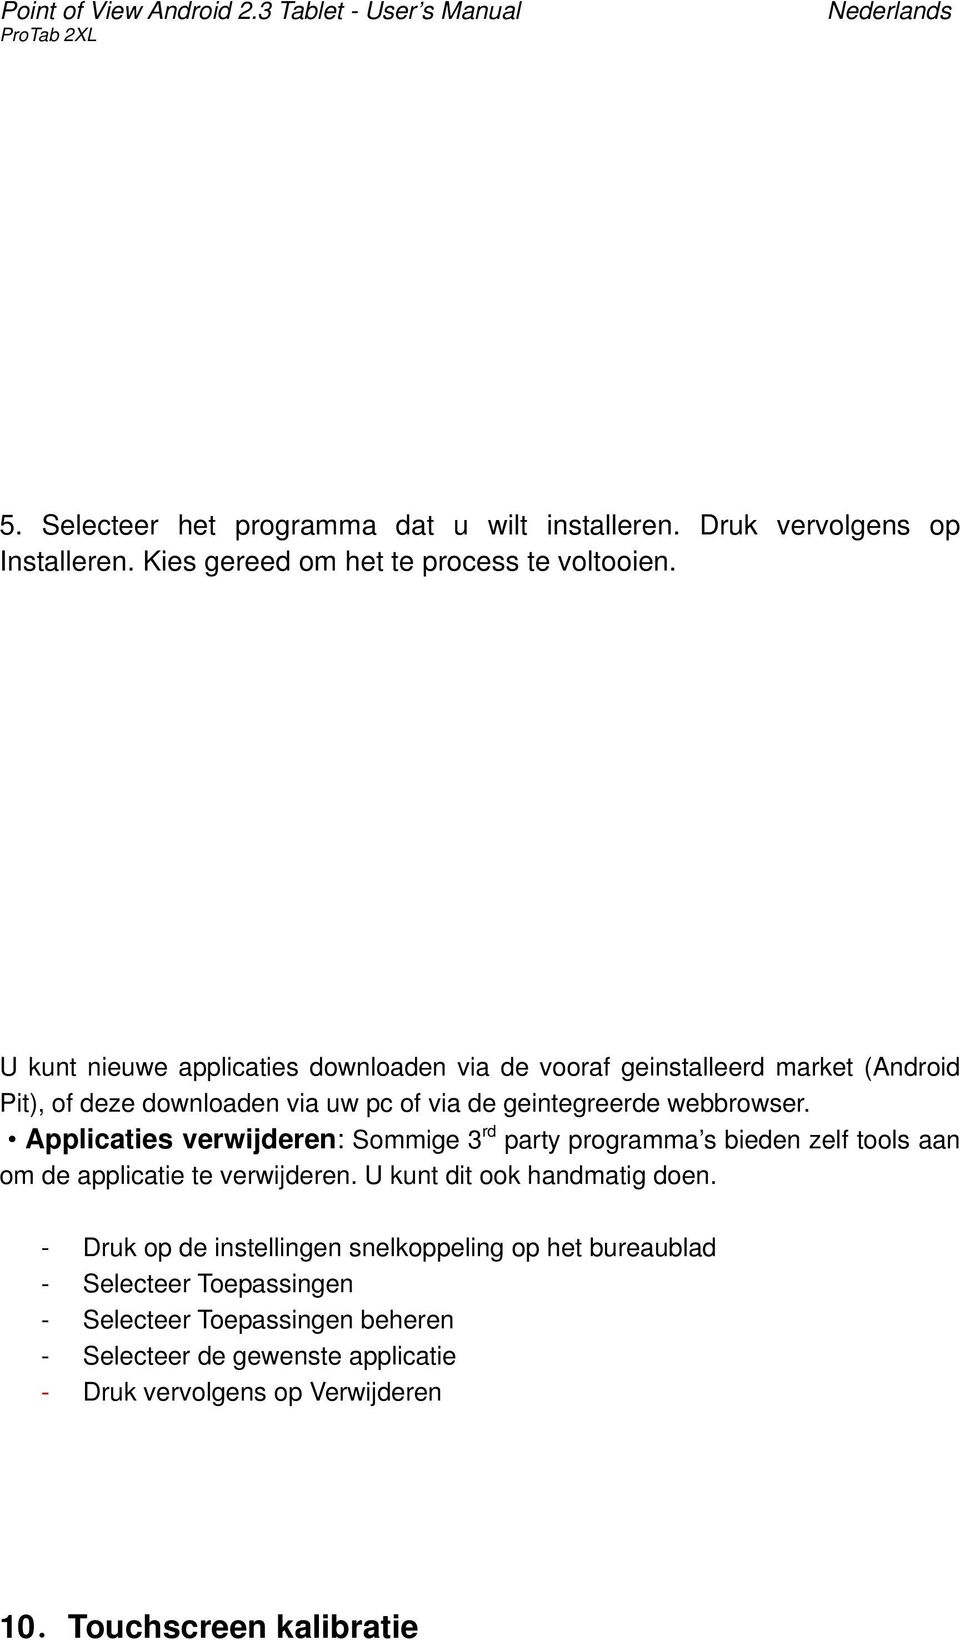 U kunt nieuwe applicaties downloaden via de vooraf geinstalleerd market (Android Pit), of deze downloaden via uw pc of via de geintegreerde webbrowser.